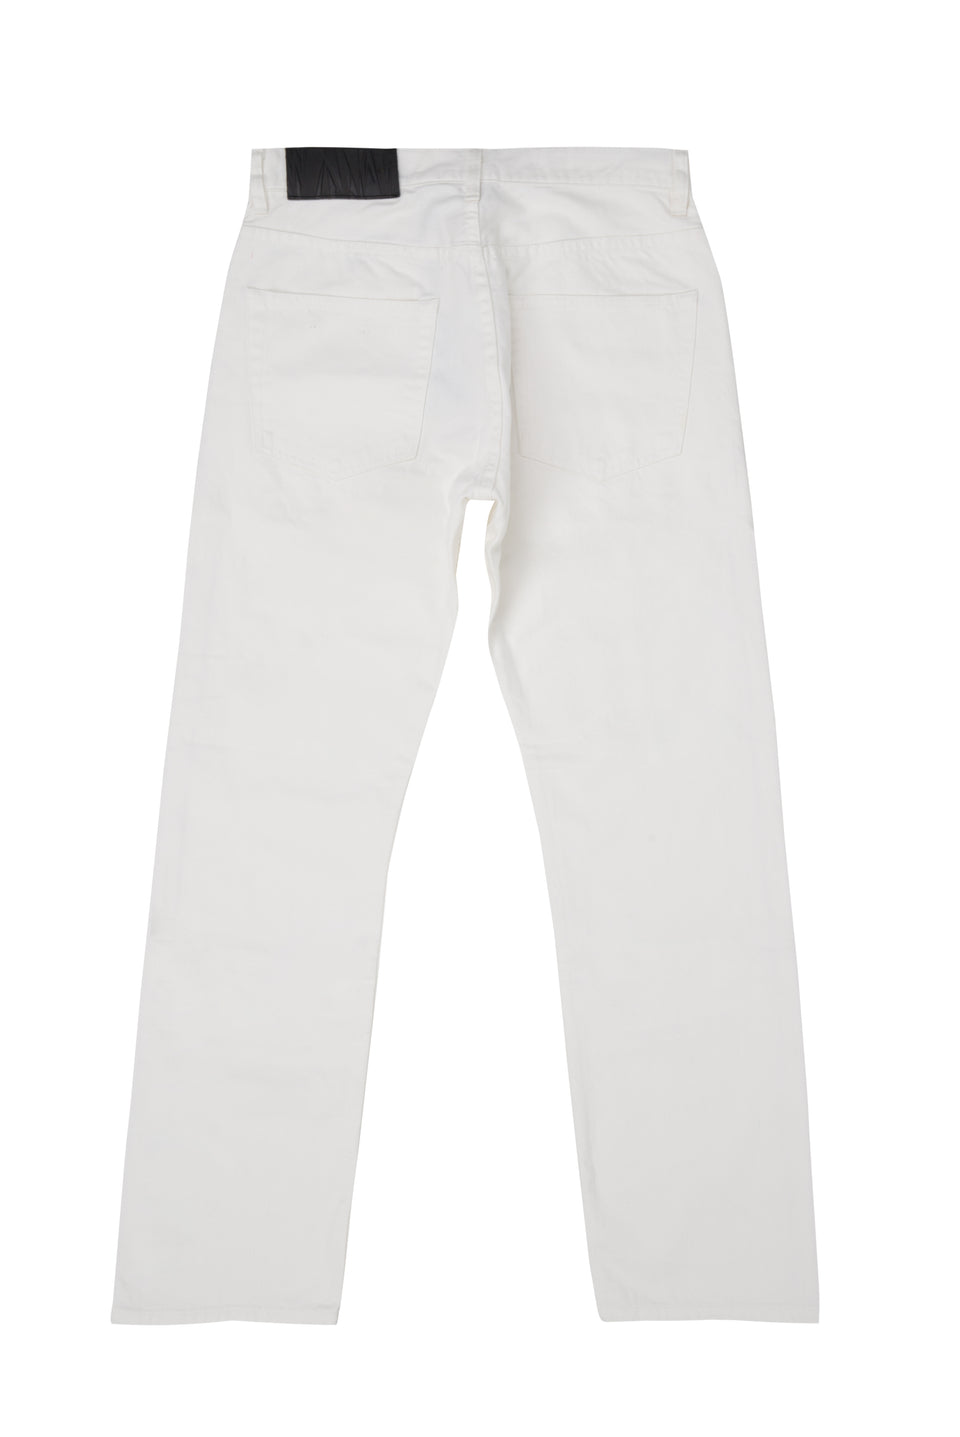 White Out Denim (Straight)